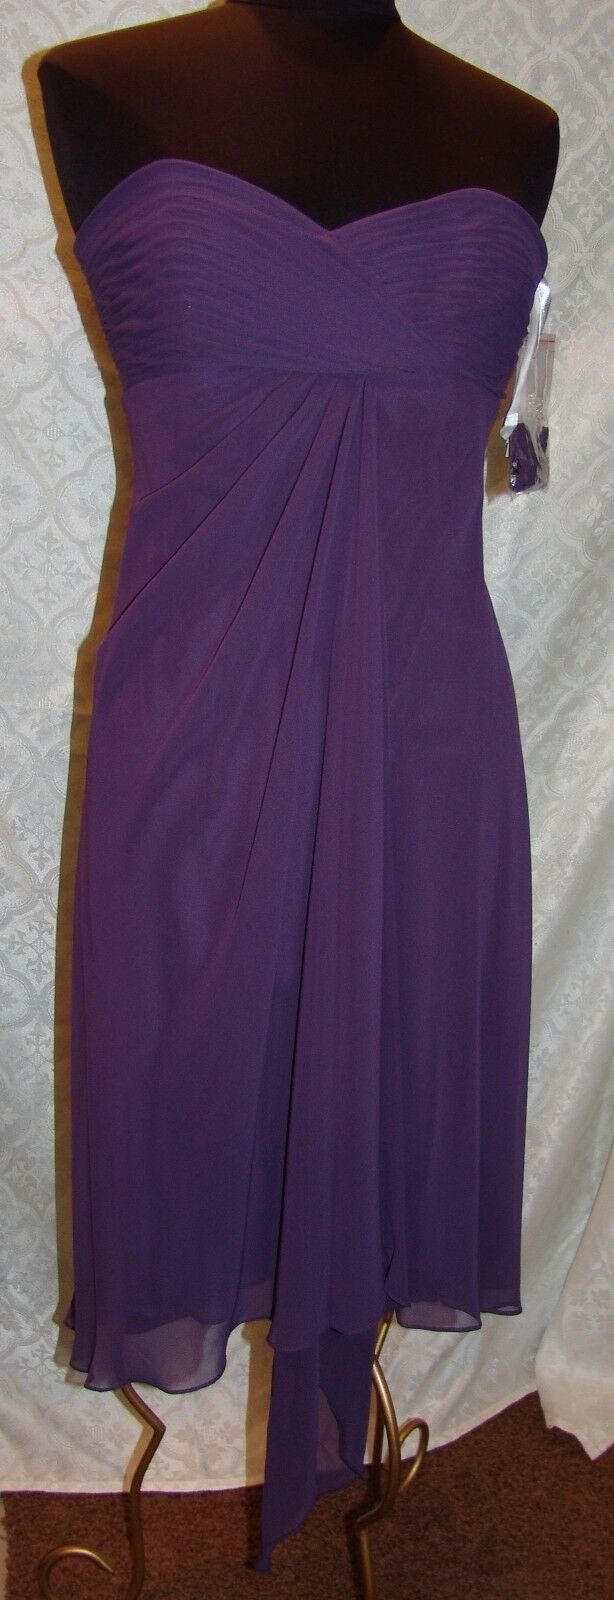 Primary image for Davids Bridal NWT Sleeveless Chiffon Ruched Dress 8 Lapis Purple Prom Formal